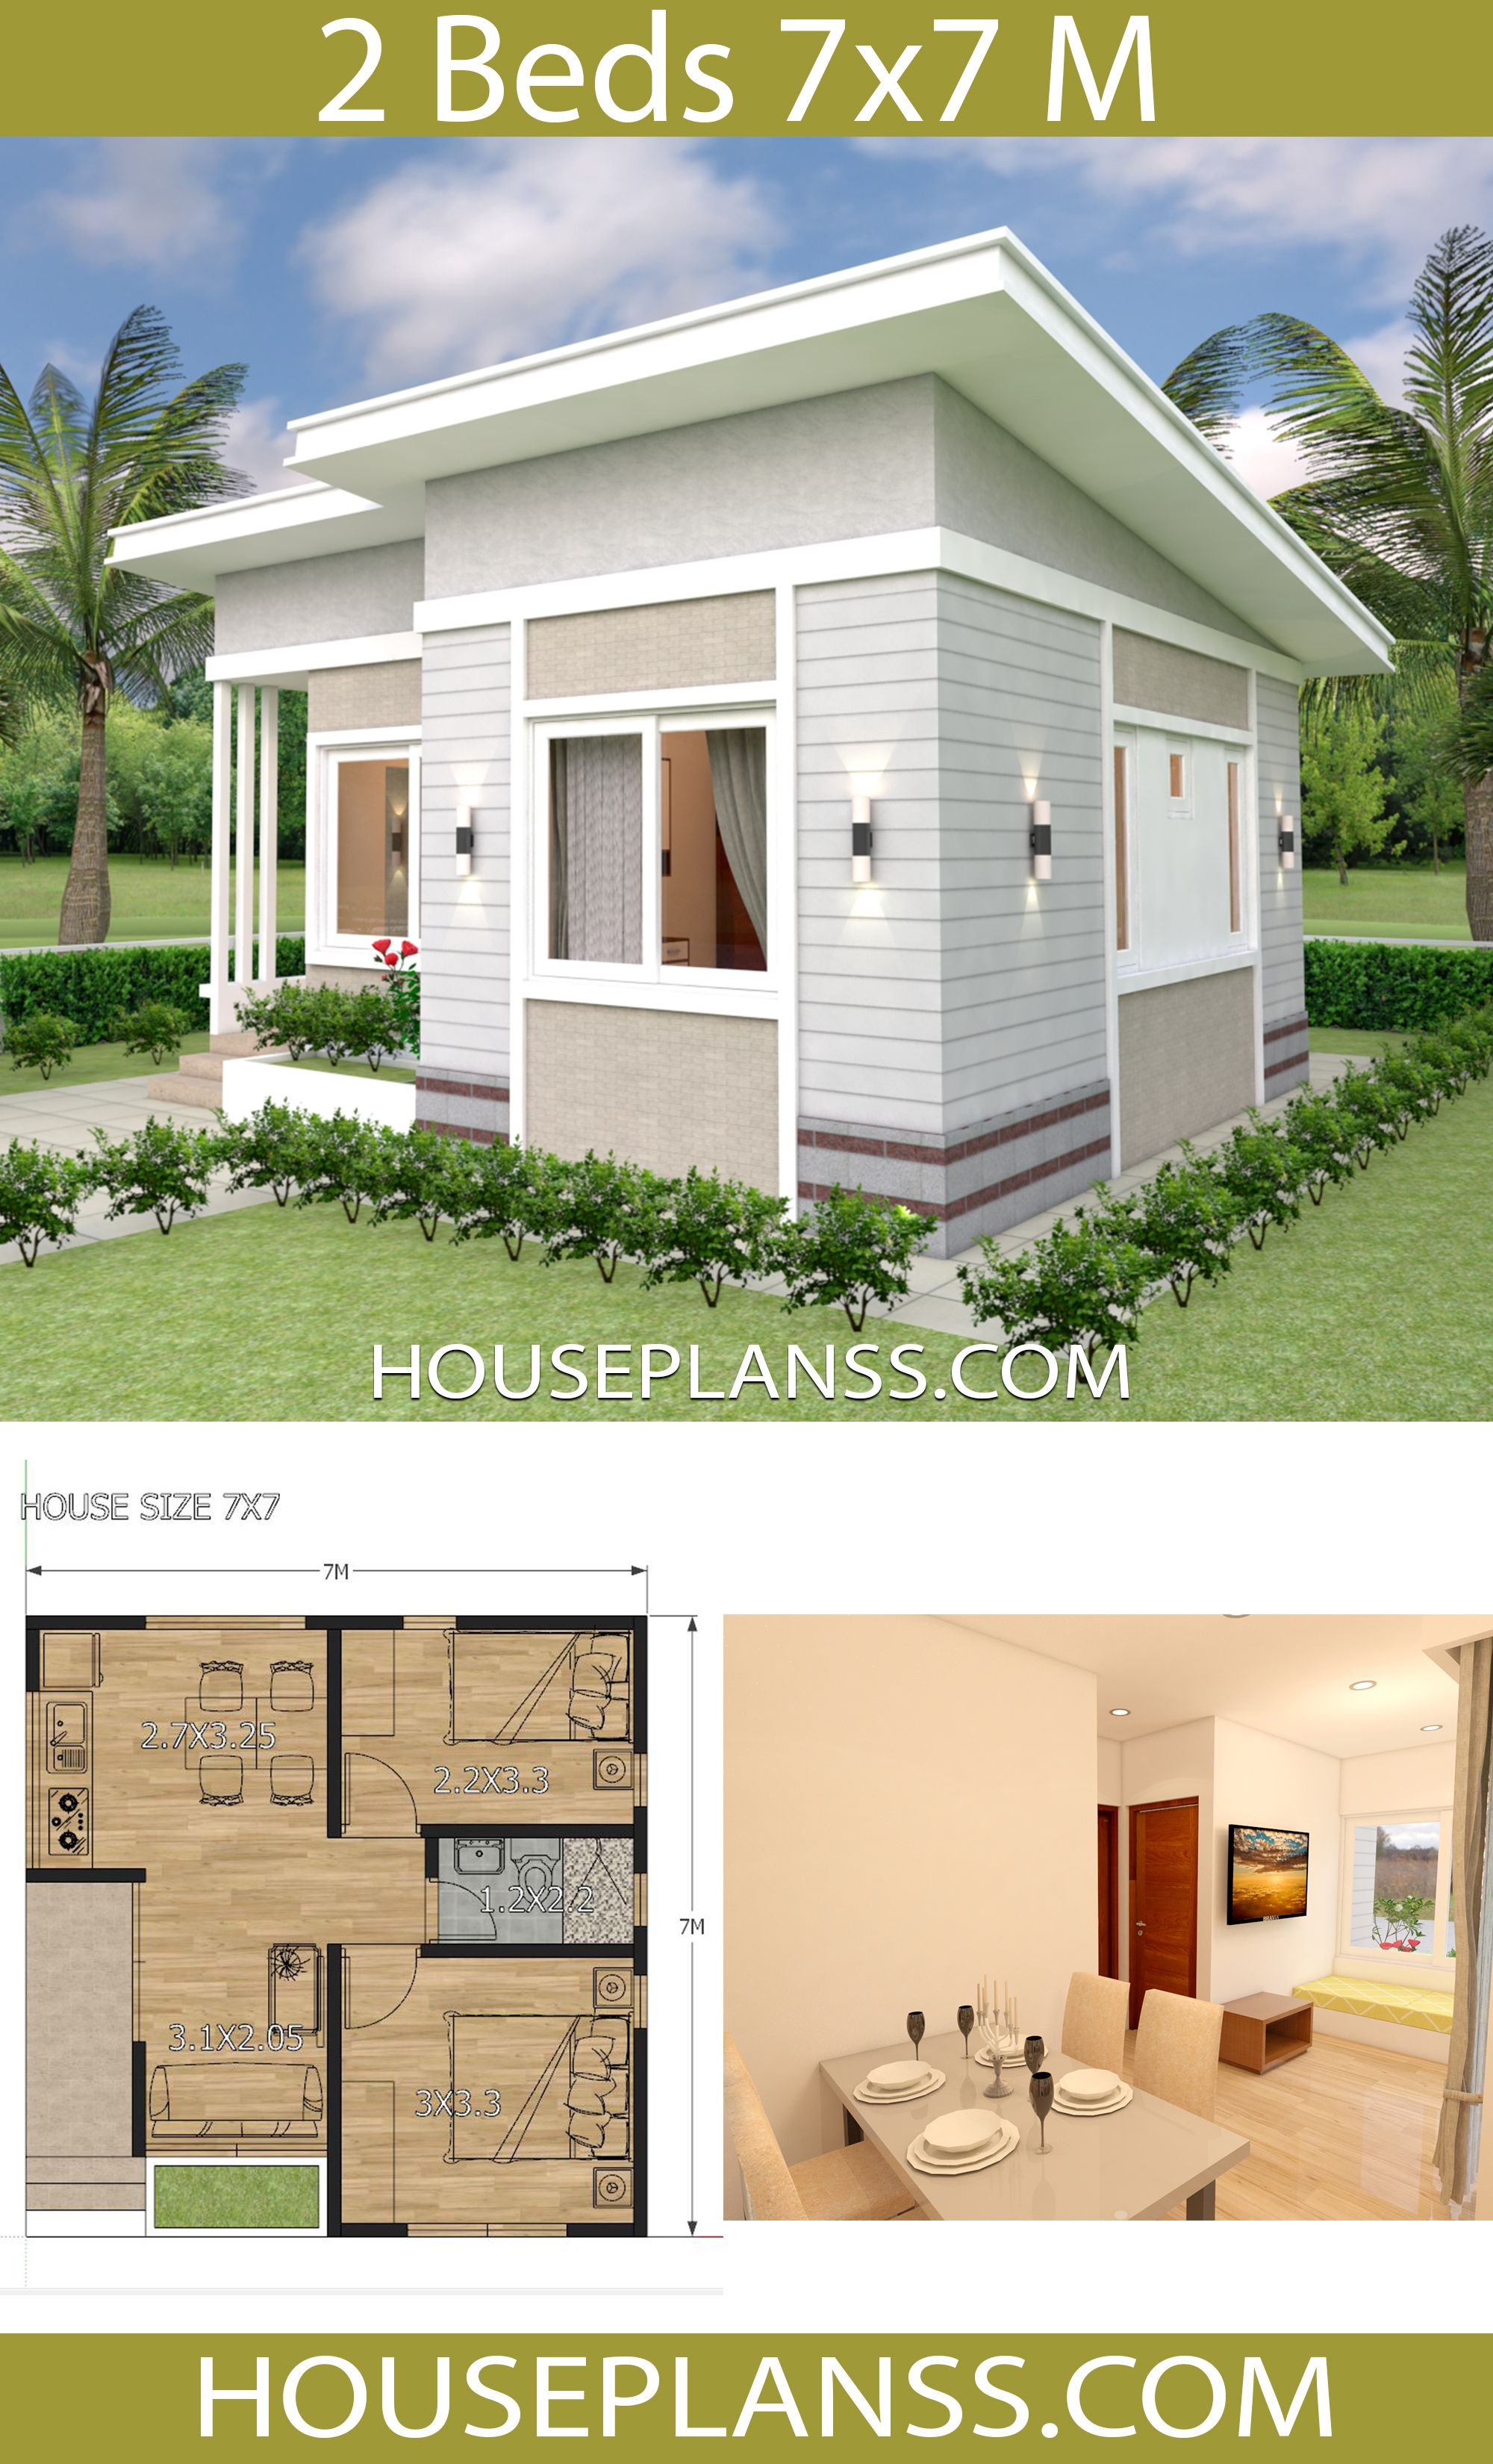 Small House Design Plans 7x7 With 2 Bedrooms House Plans 3d Small House Design Small House Design Plans Sims House Plans